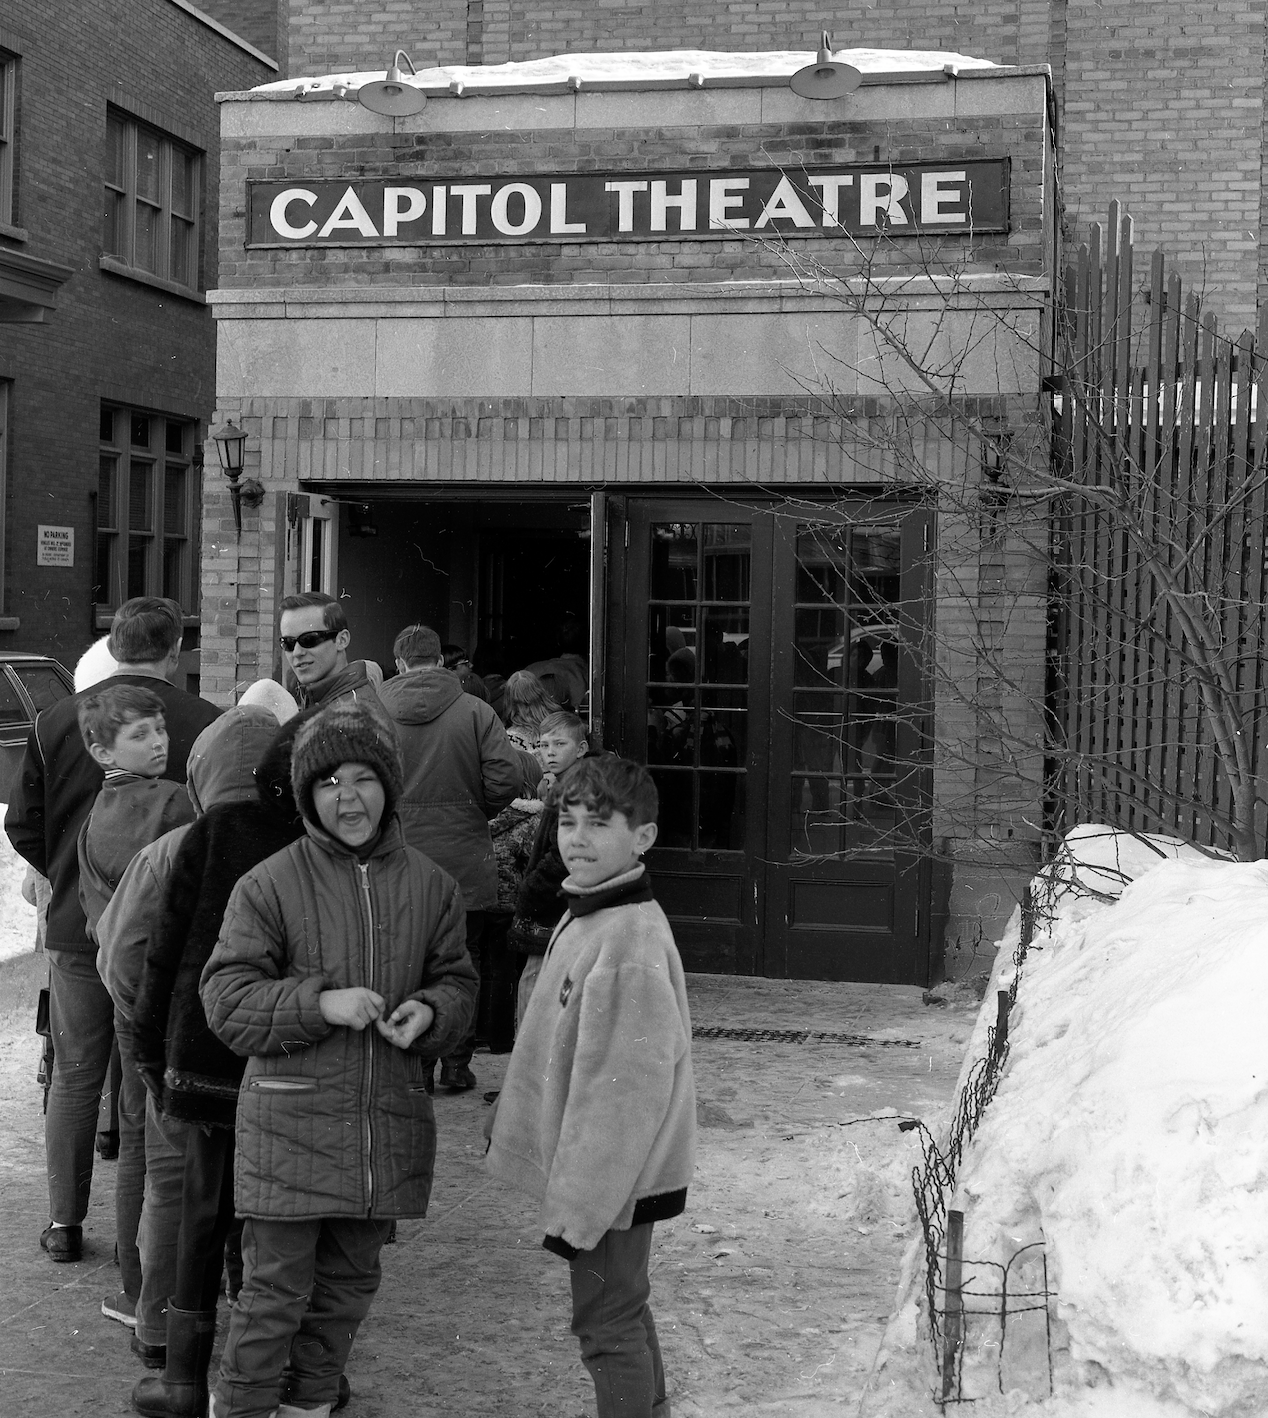 The main entrance to the Capitol was on Second Avenue, but you could also enter and buy tickets from this alternate entrance on First Avenue. (Saskatchewan Archives; Copyright: Saskatoon StarPhoenix)